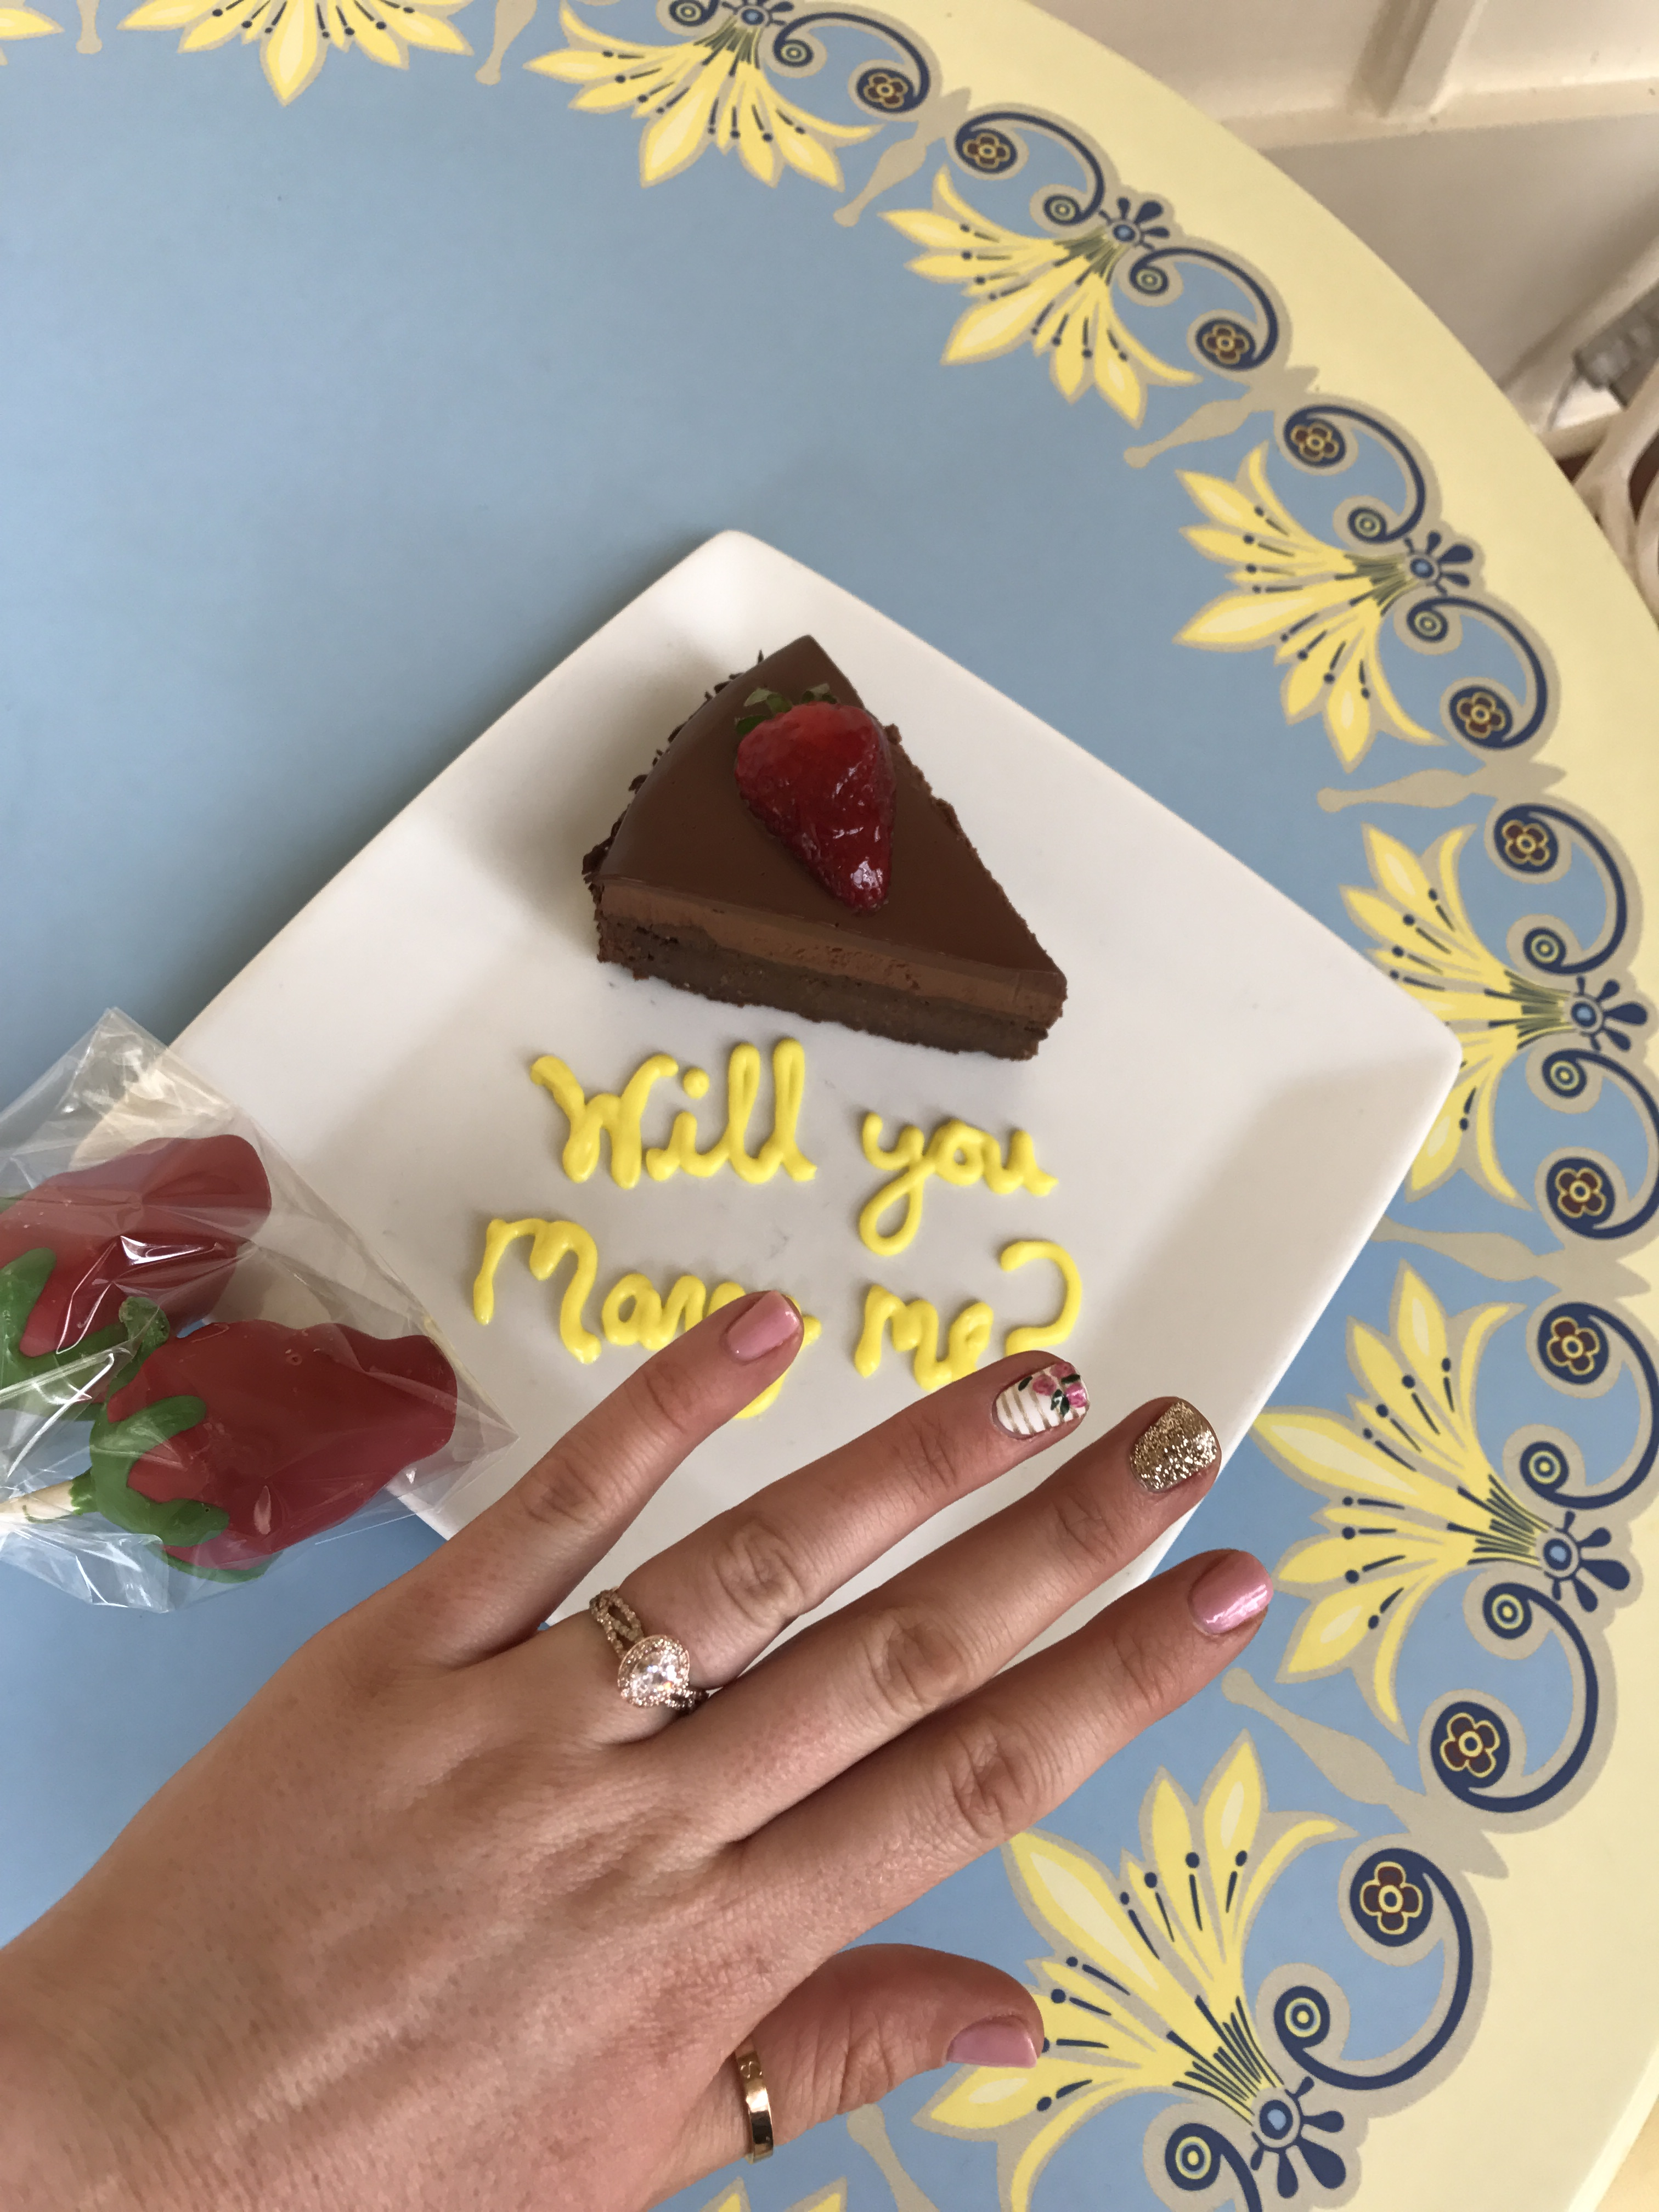 Proposal Ideas The Jolley Holliday Cafe and Bakery, Disneyland